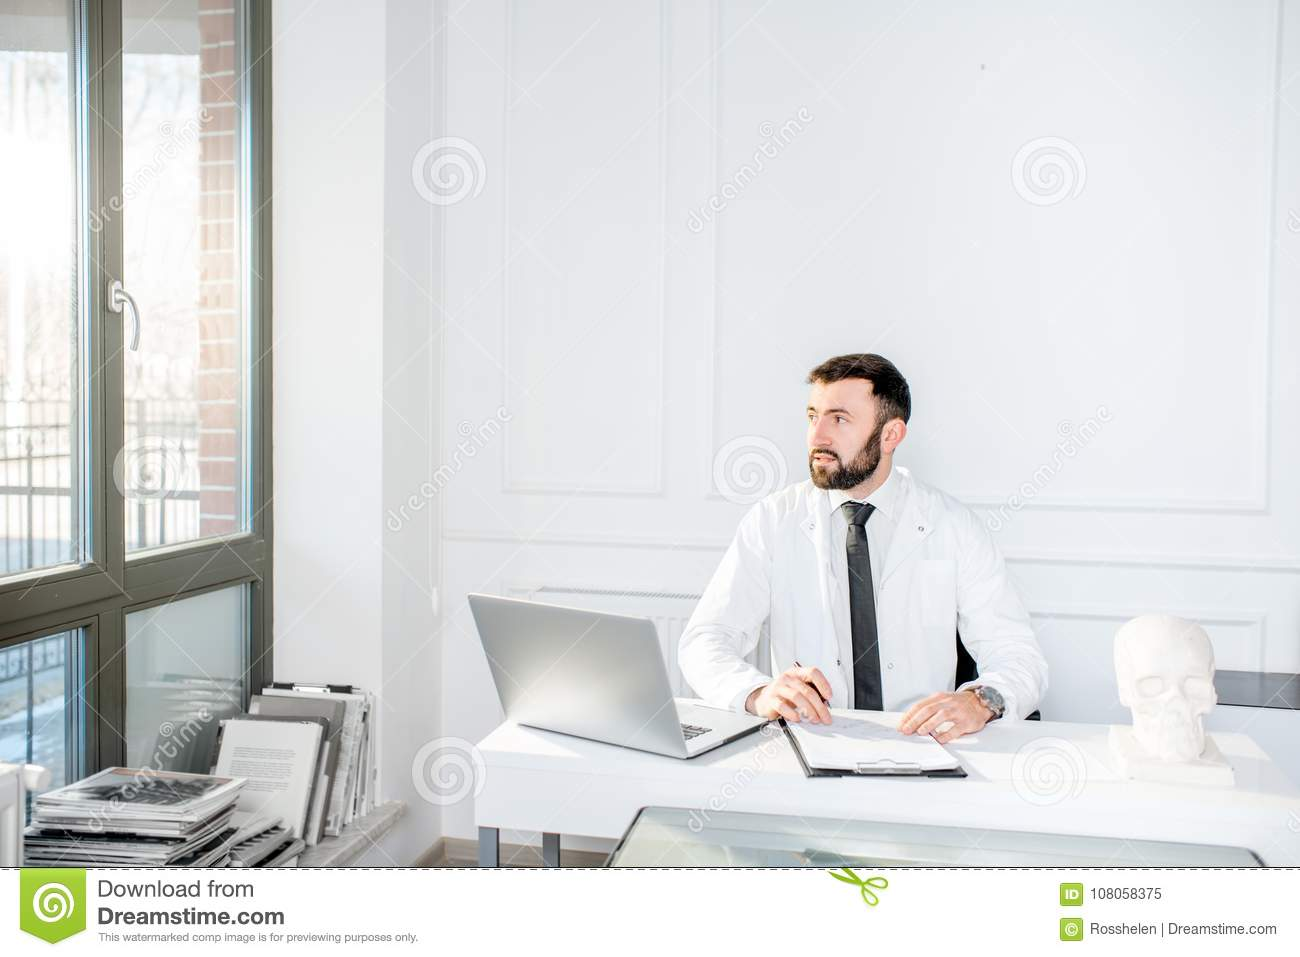 Male Doctor Working In The Office Stock Image Image Of Luxury